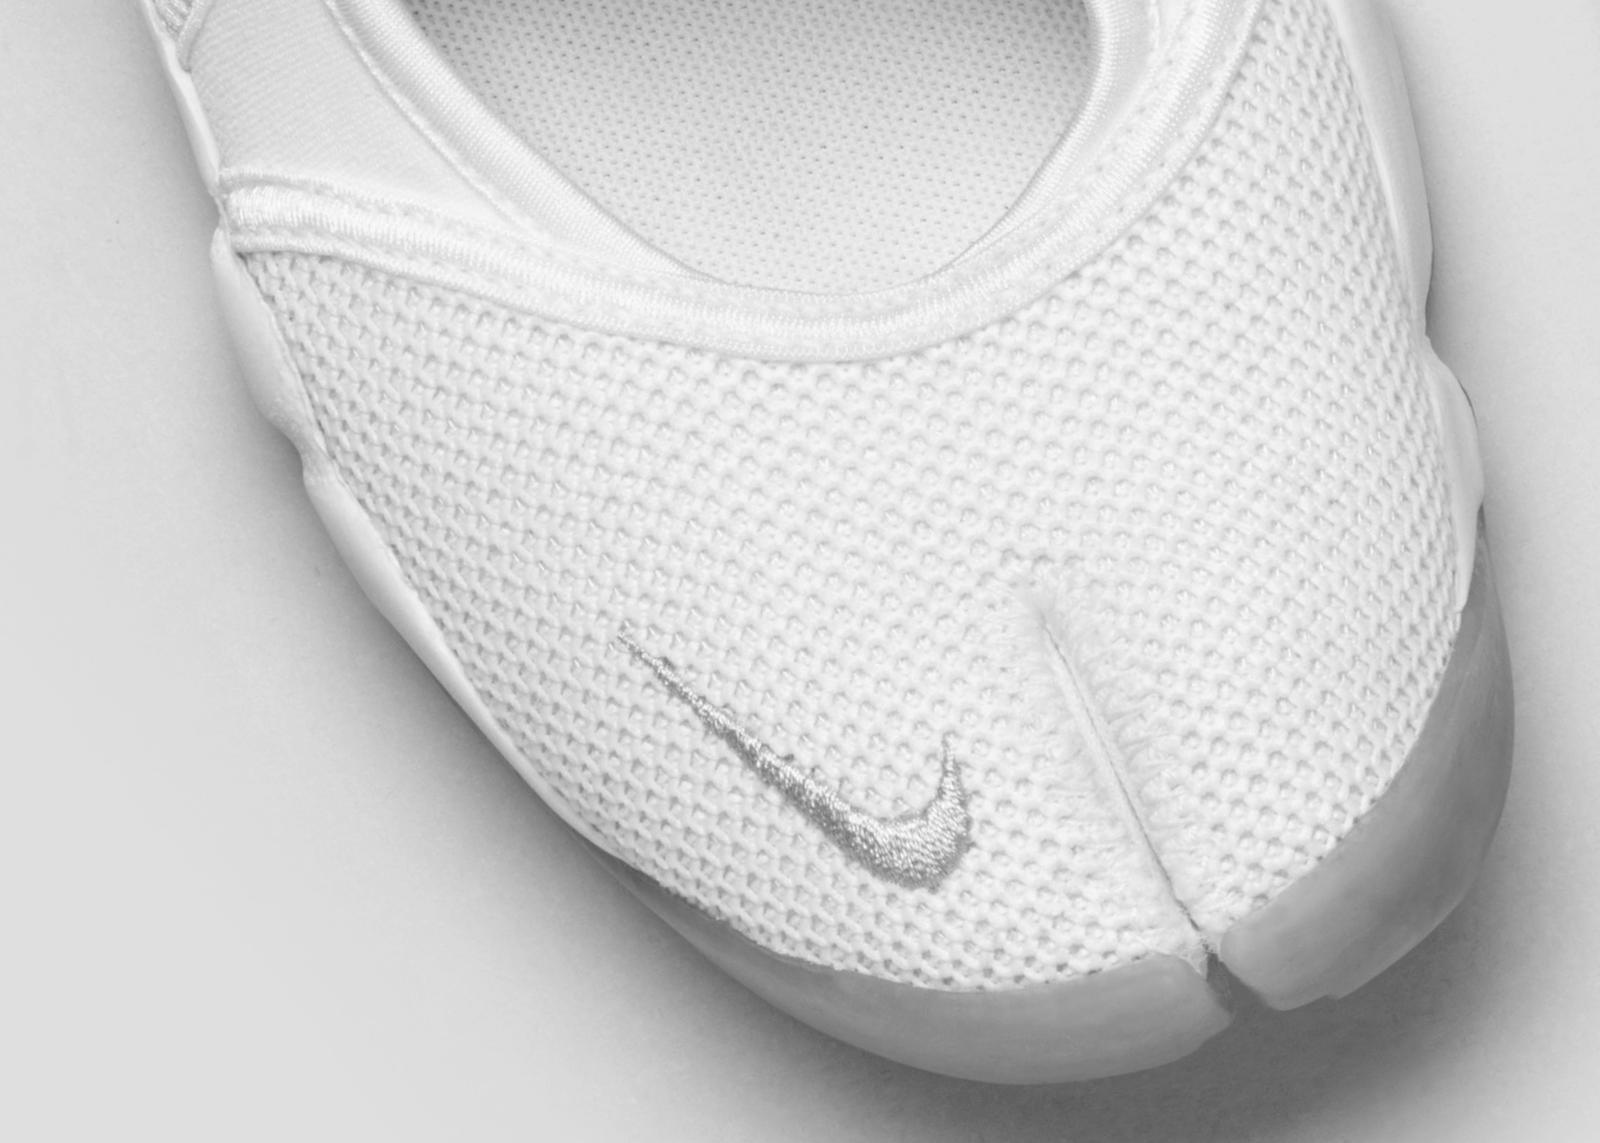 Su15 nsw air rift w ftwr detail 02 rectangle 1600